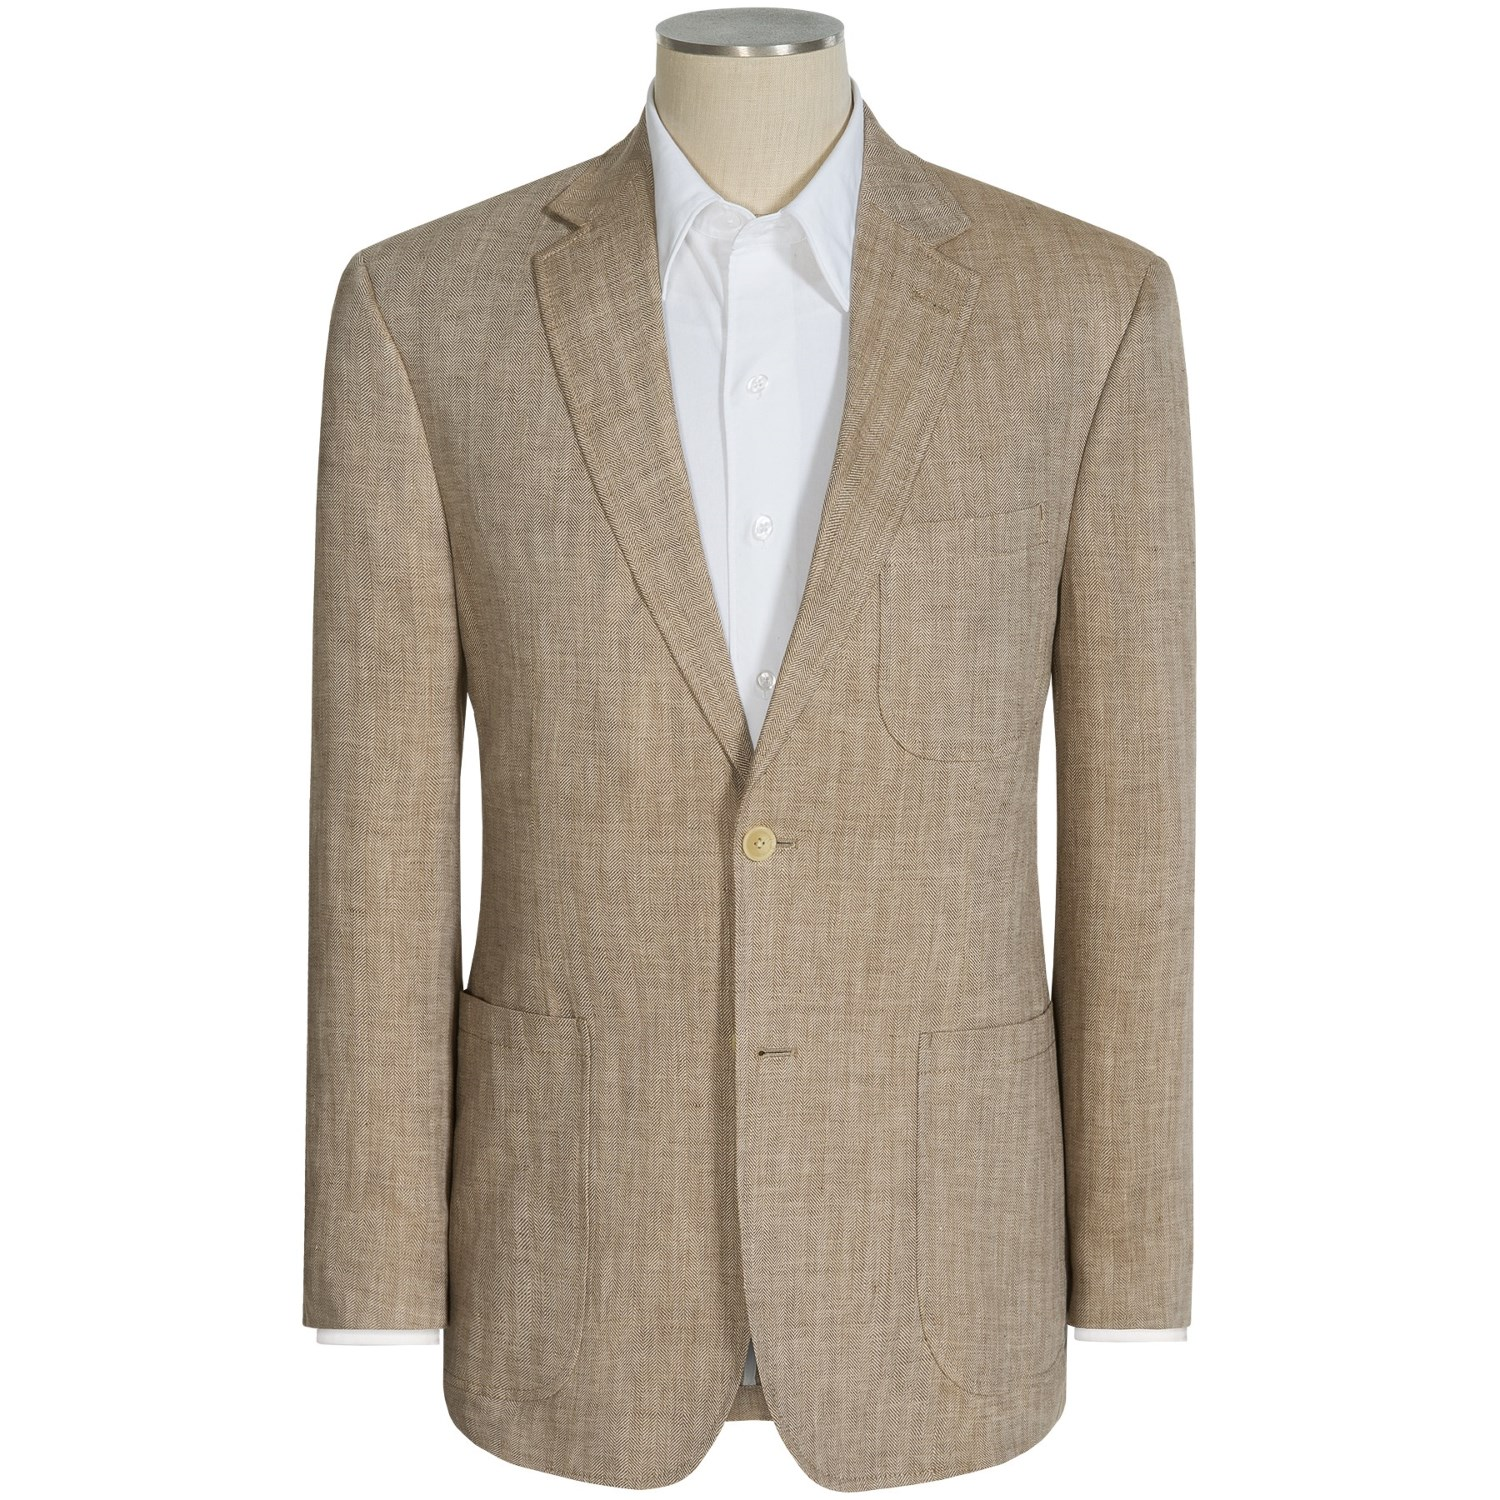 Sep 09, · In this video, Jeff from The Style O.G. discusses how men can incorporate the tweed or herringbone blazer into their manakamanamobilecenter.tk talks about how the tweed or herringbone sports jacket .